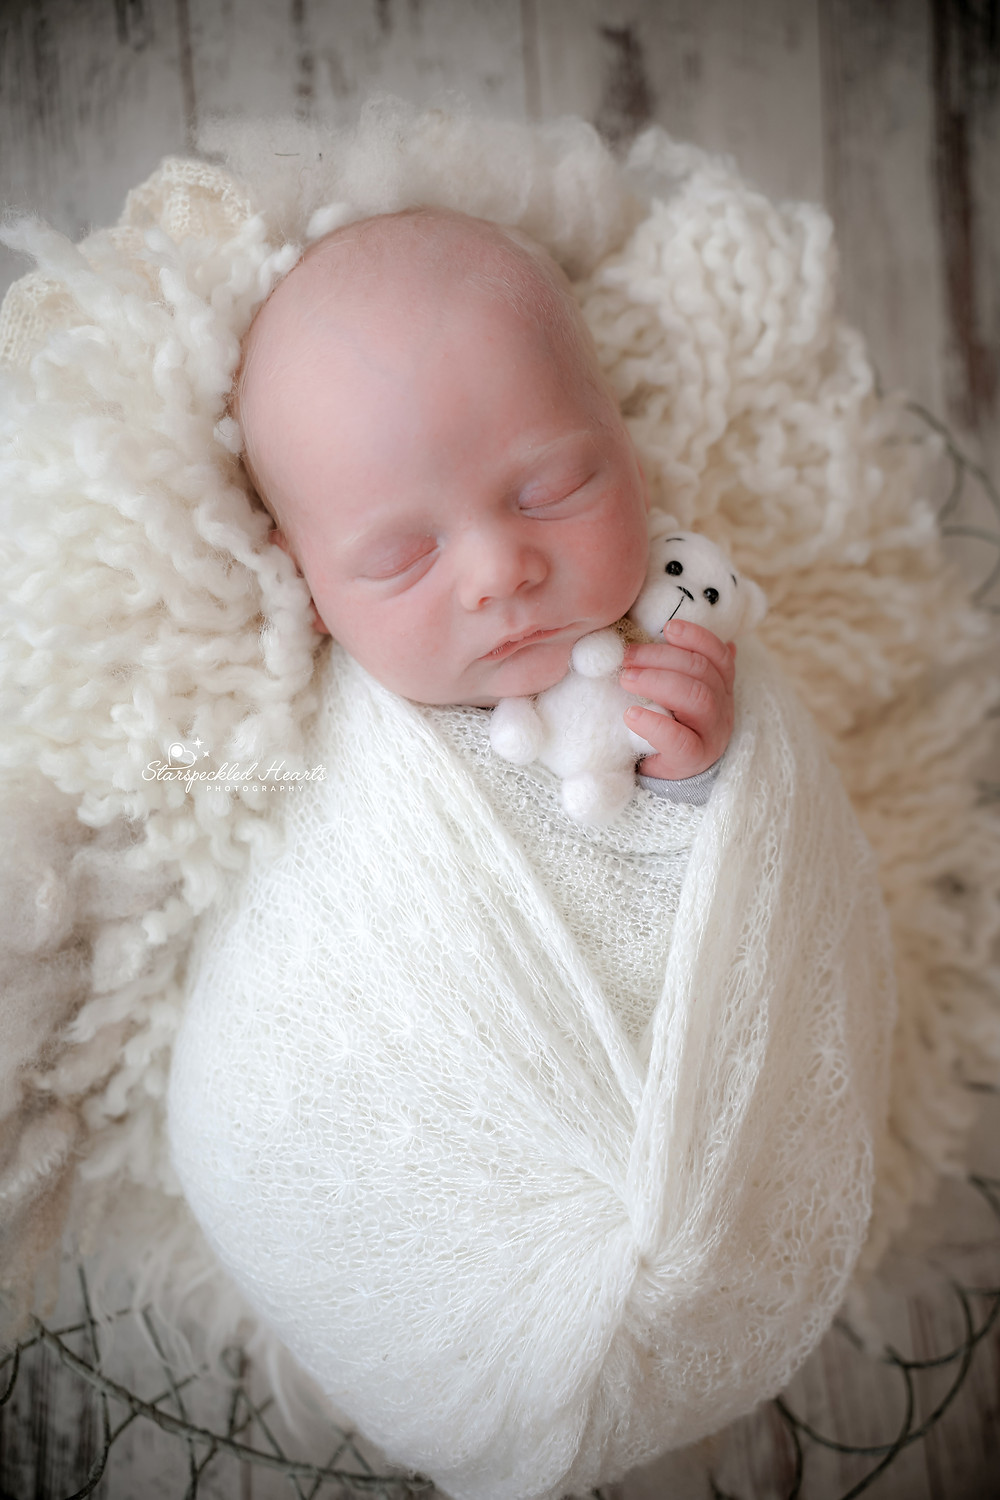 adorable sleeping newborn baby wrapped in white, cuddling a white teddy bear